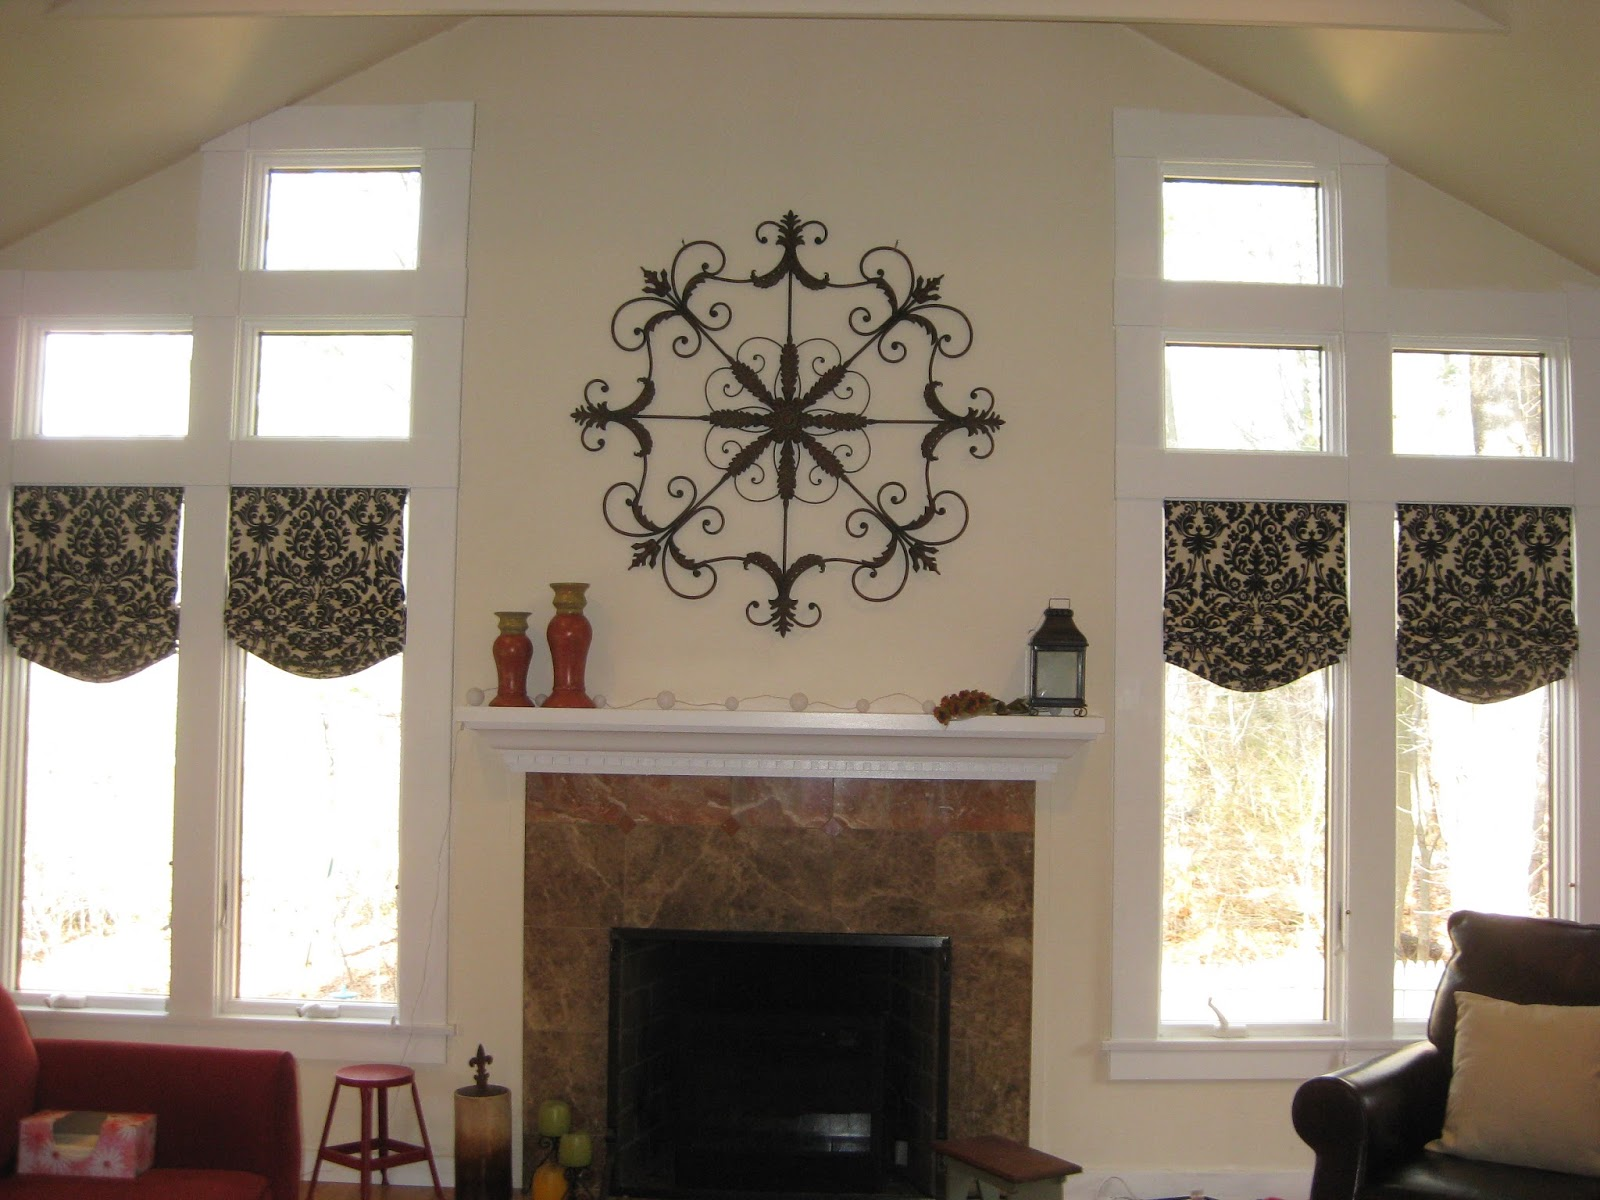 once installed these functional shades the iron medallion display above the fireplace beautifully relaxed roman